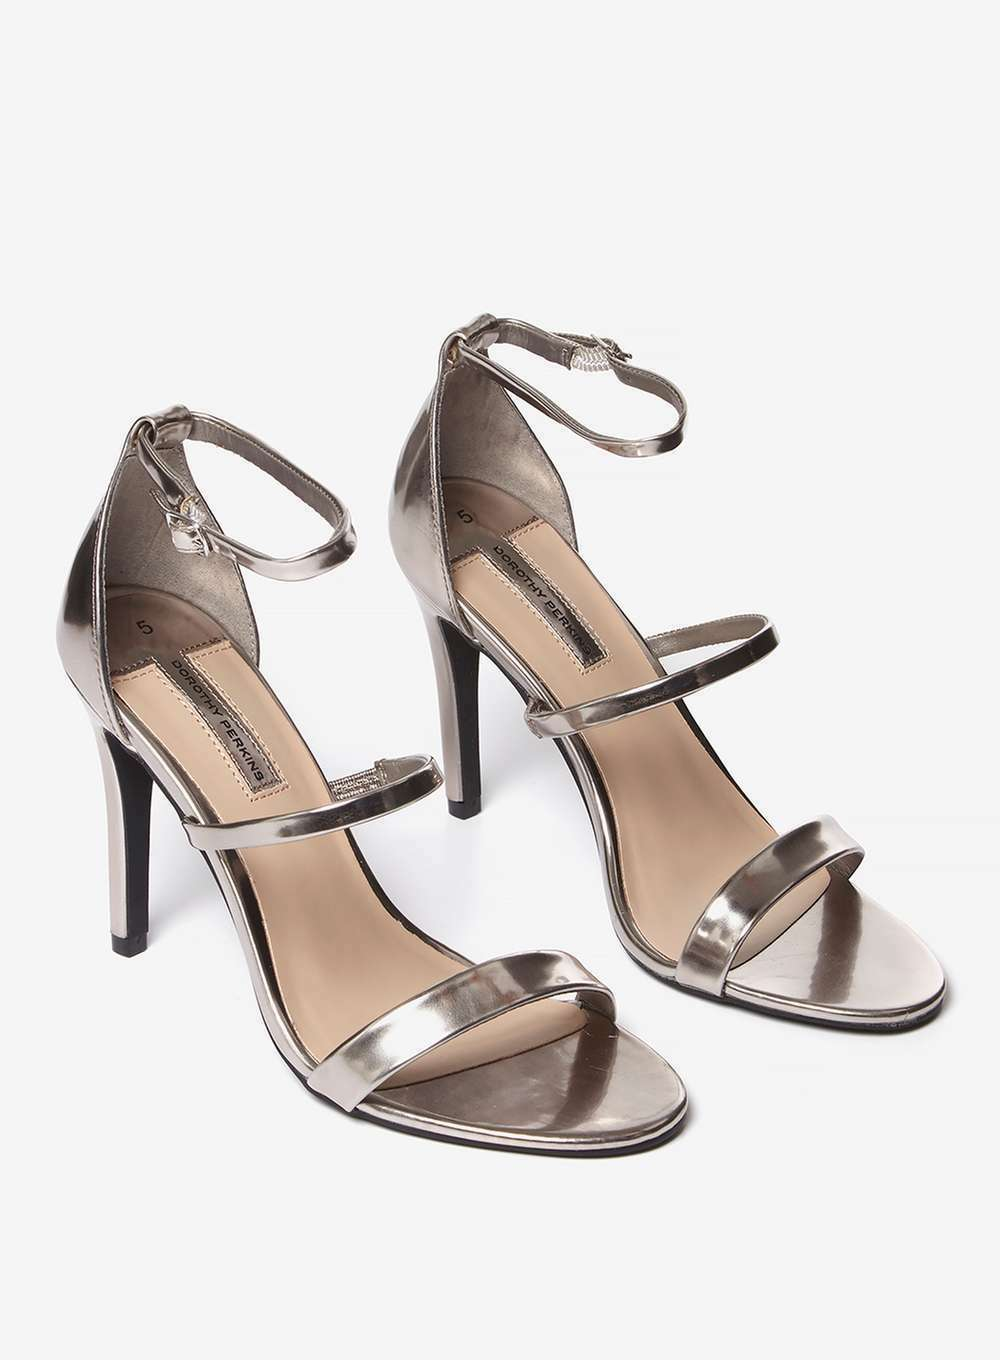 Dgoldthy Perkins white Heeled Triple Strap Sandals shoes Size 7   Pewter